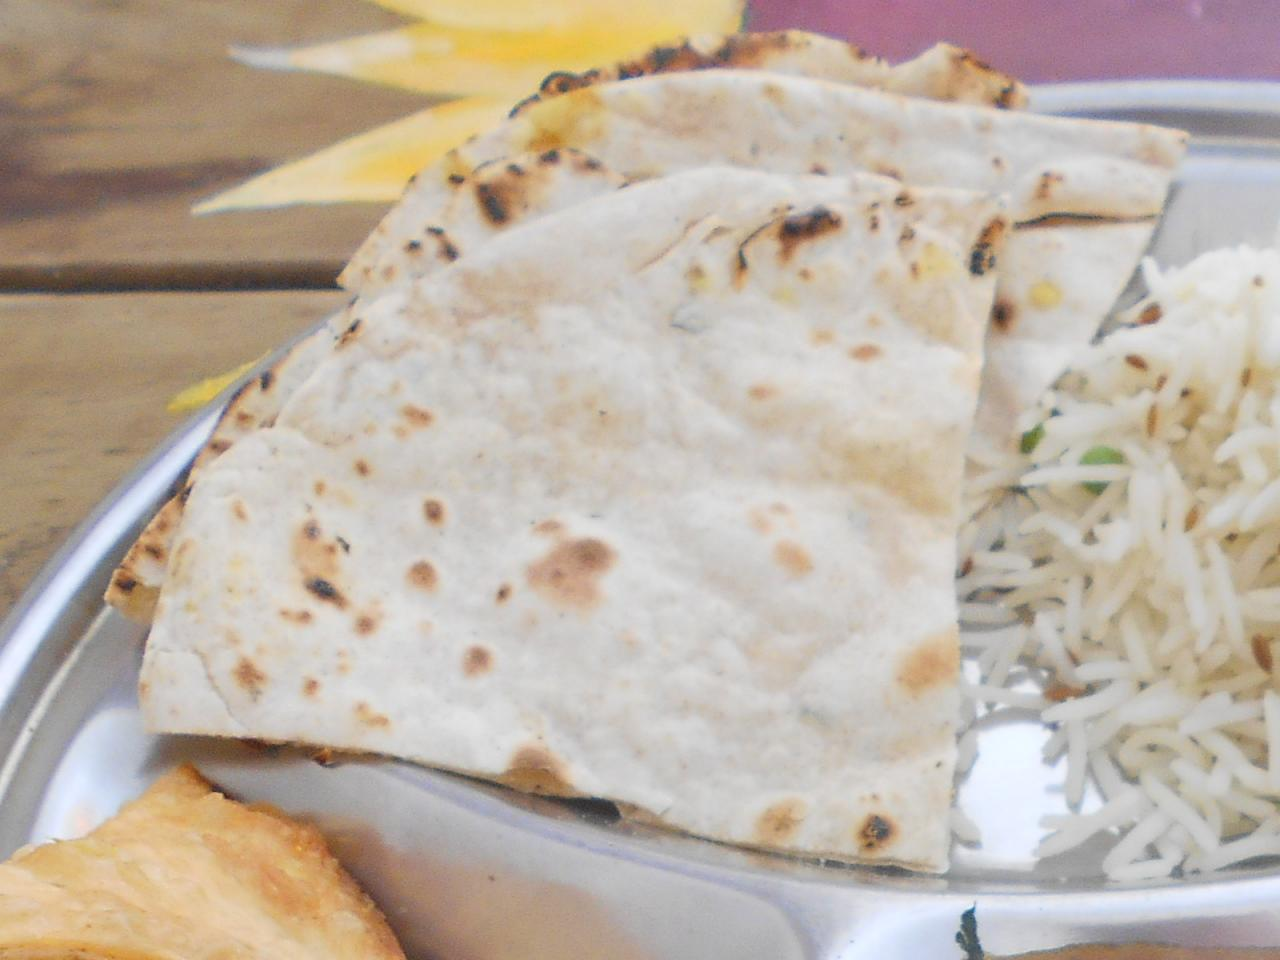 The chapati received a 10-rating